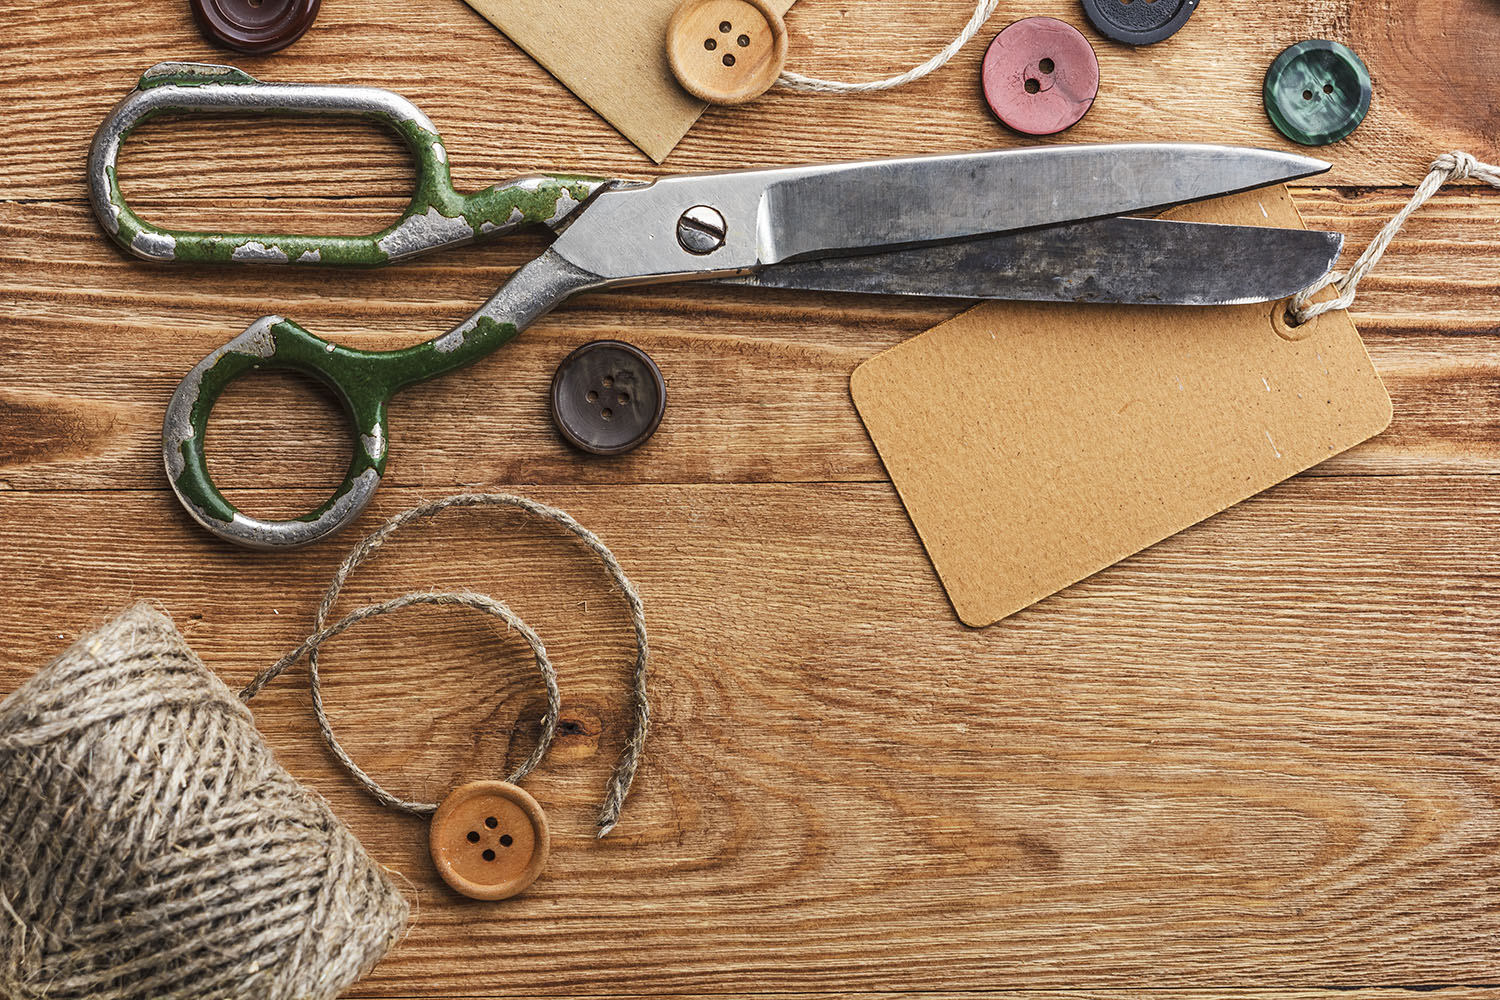 Keeping scissors sharp - how to keep scissors sharp